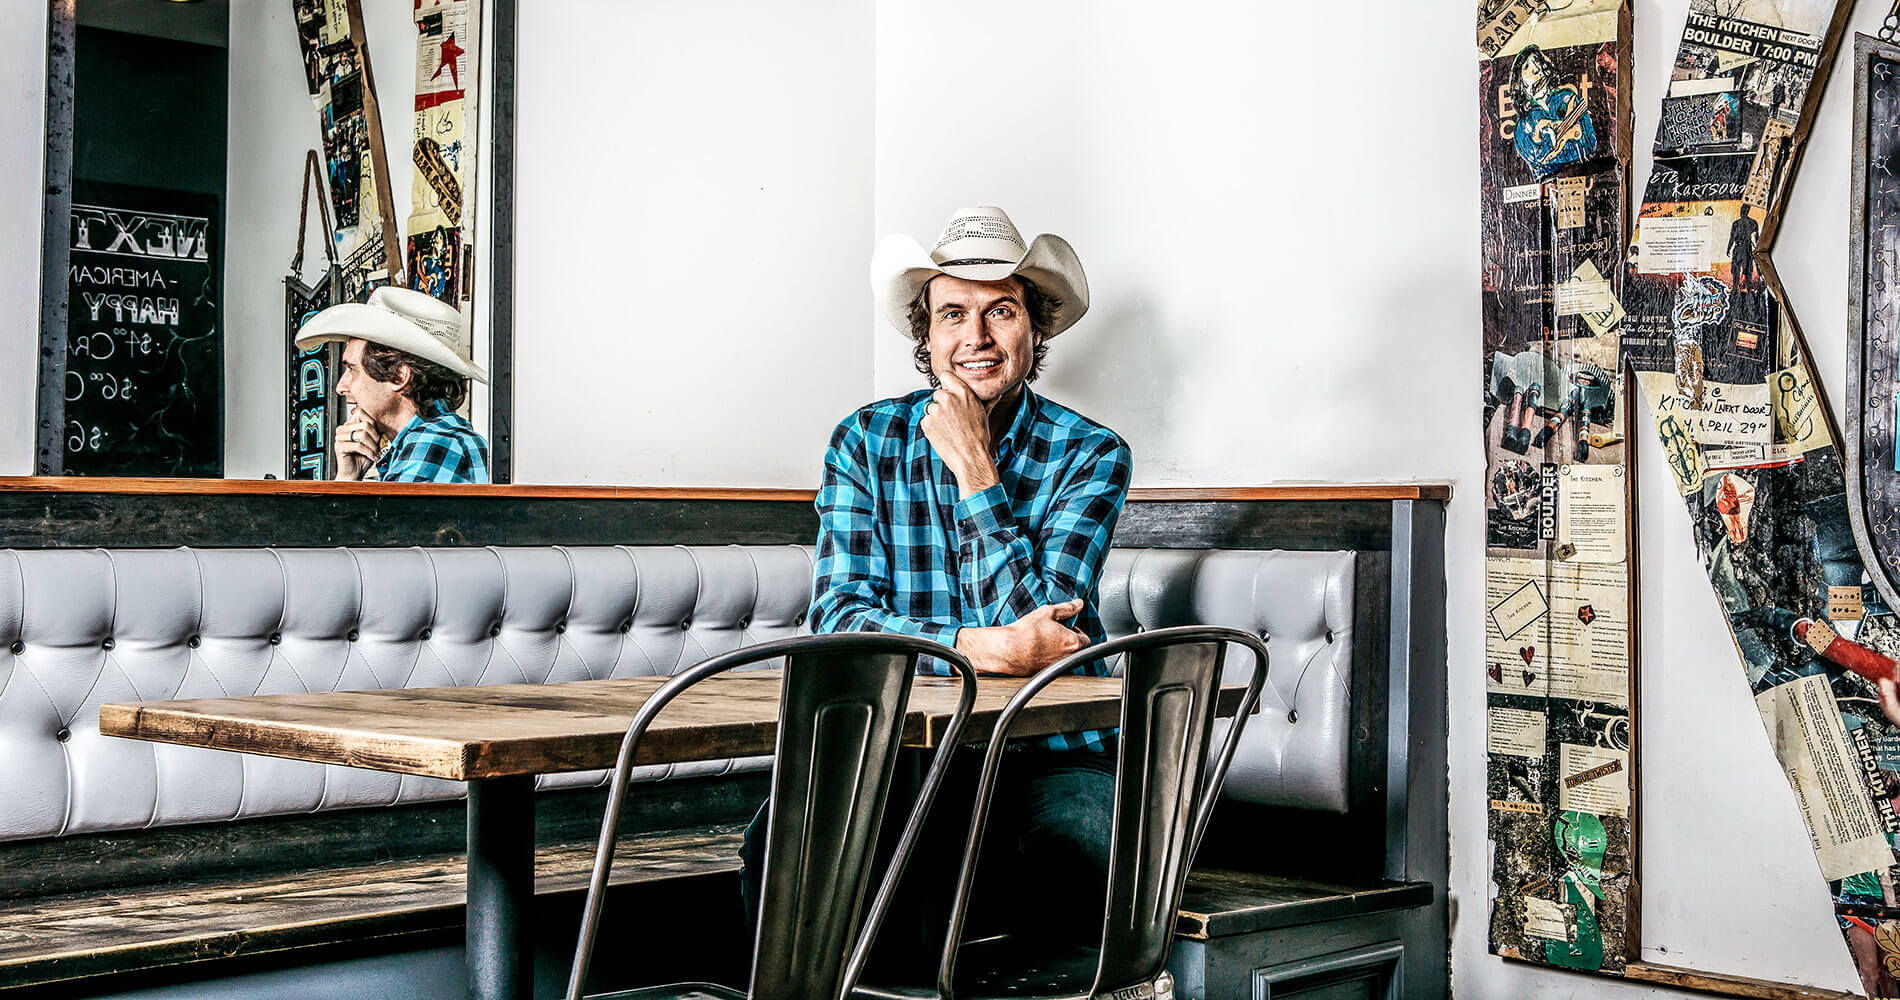 Kimbal Musk Next Door copyright Kimbal Musk